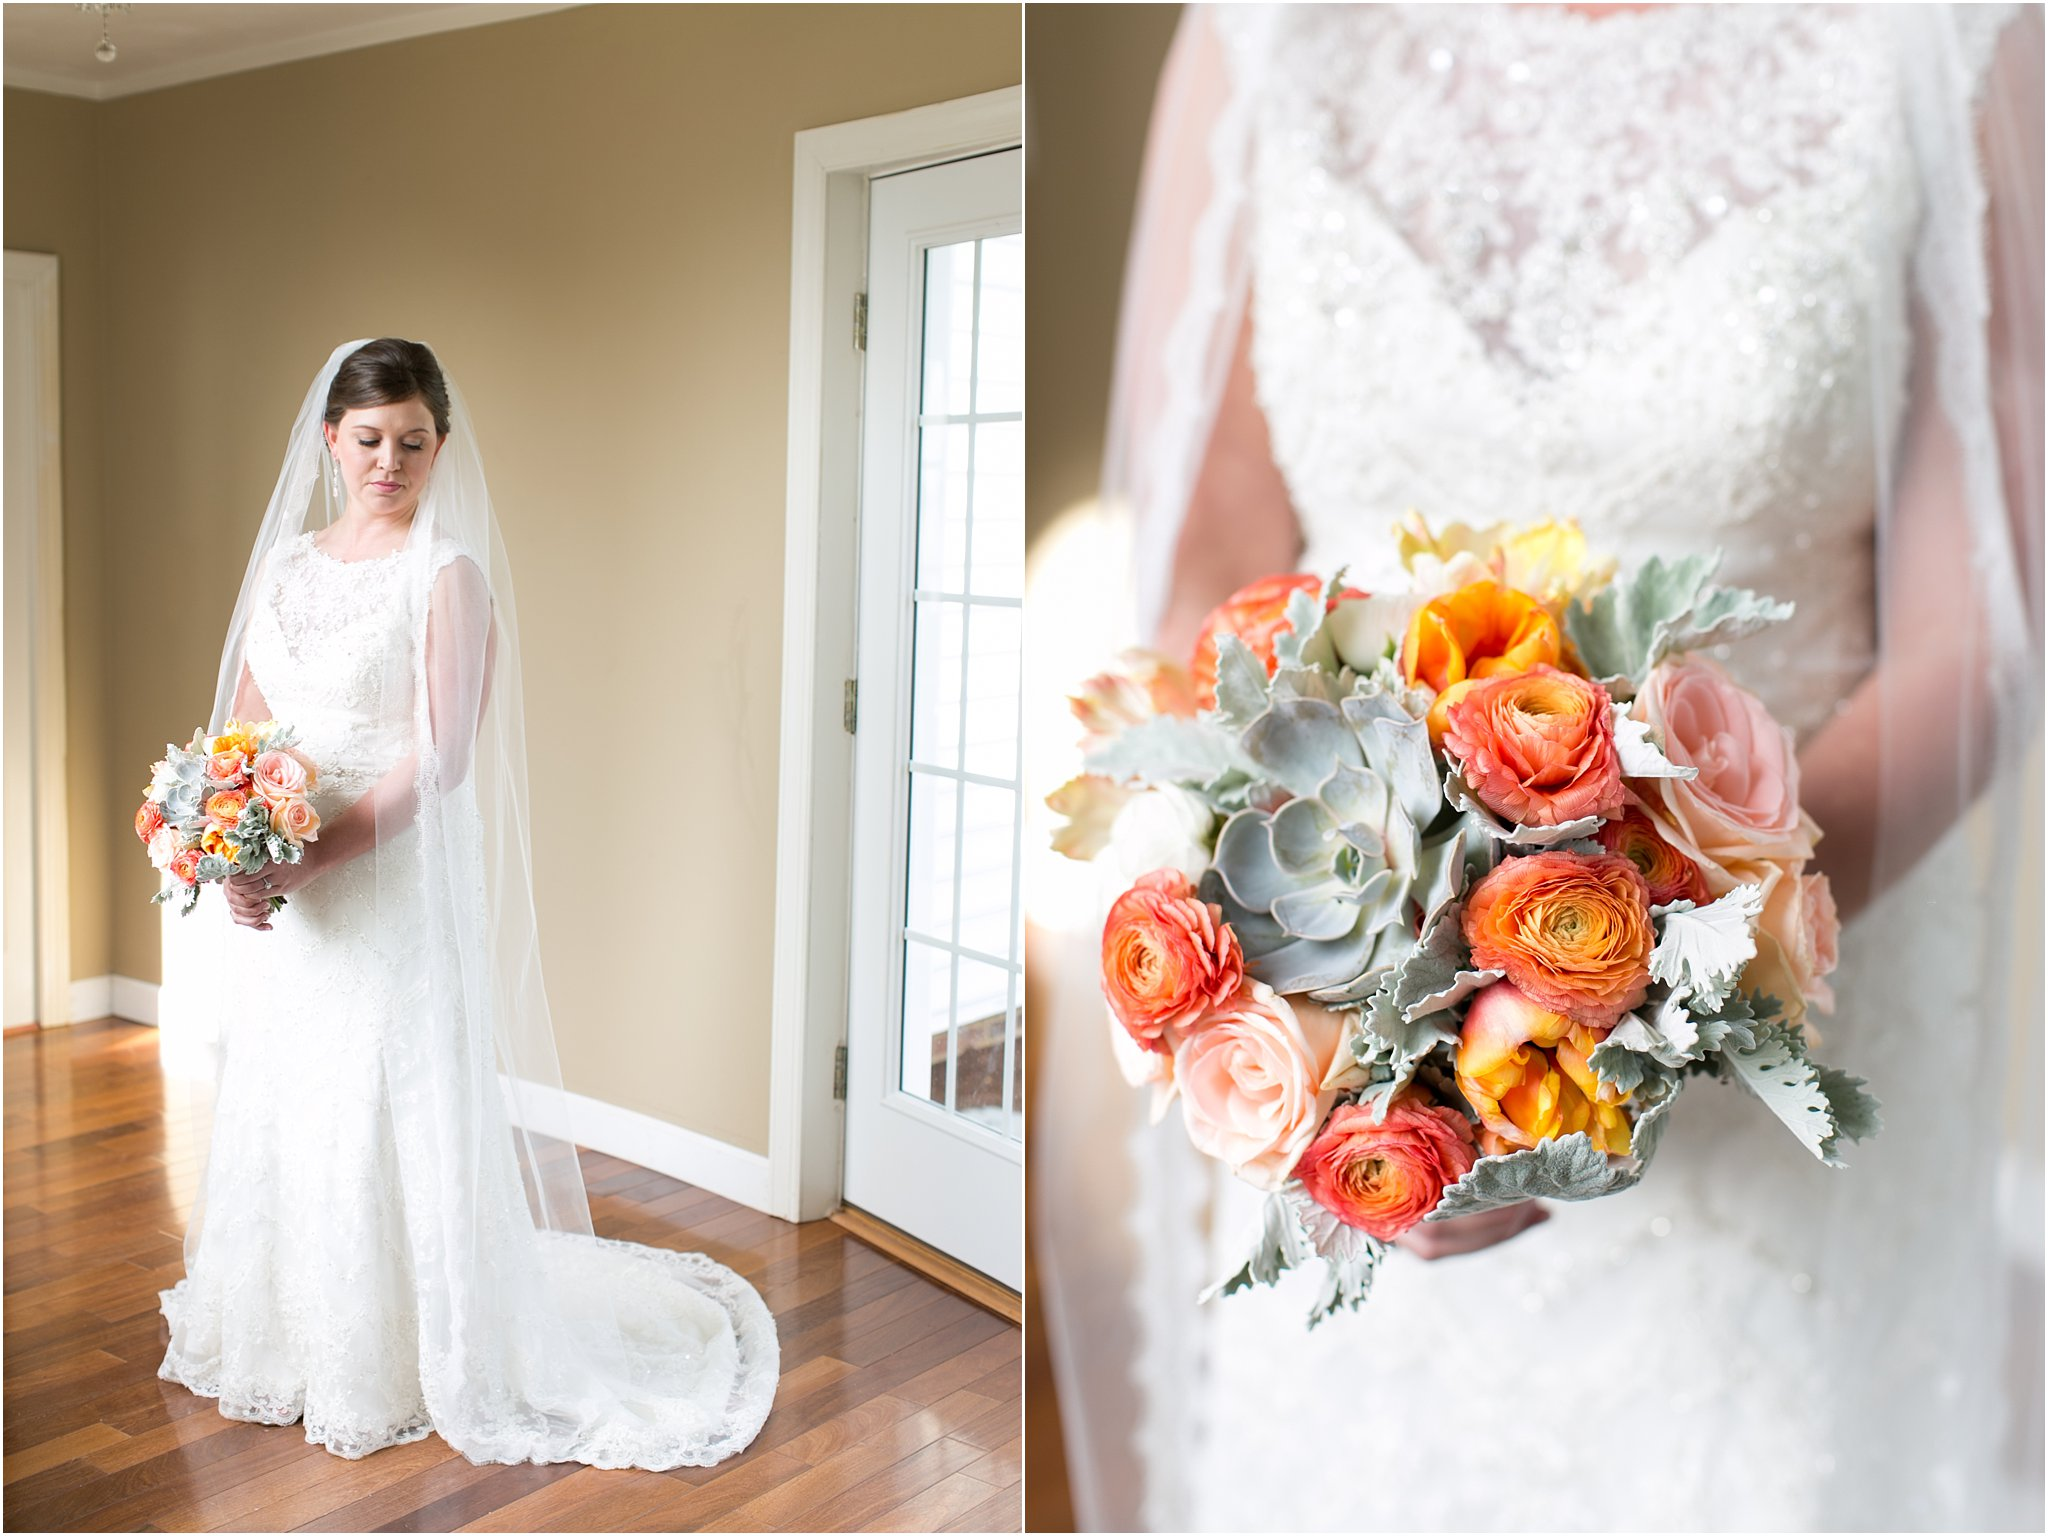 jessica_ryan_photography_holly_ridge_manor_wedding_roost_flowers_jamie_leigh_events_dhalia_edwards_candid_vibrant_wedding_colors_1281